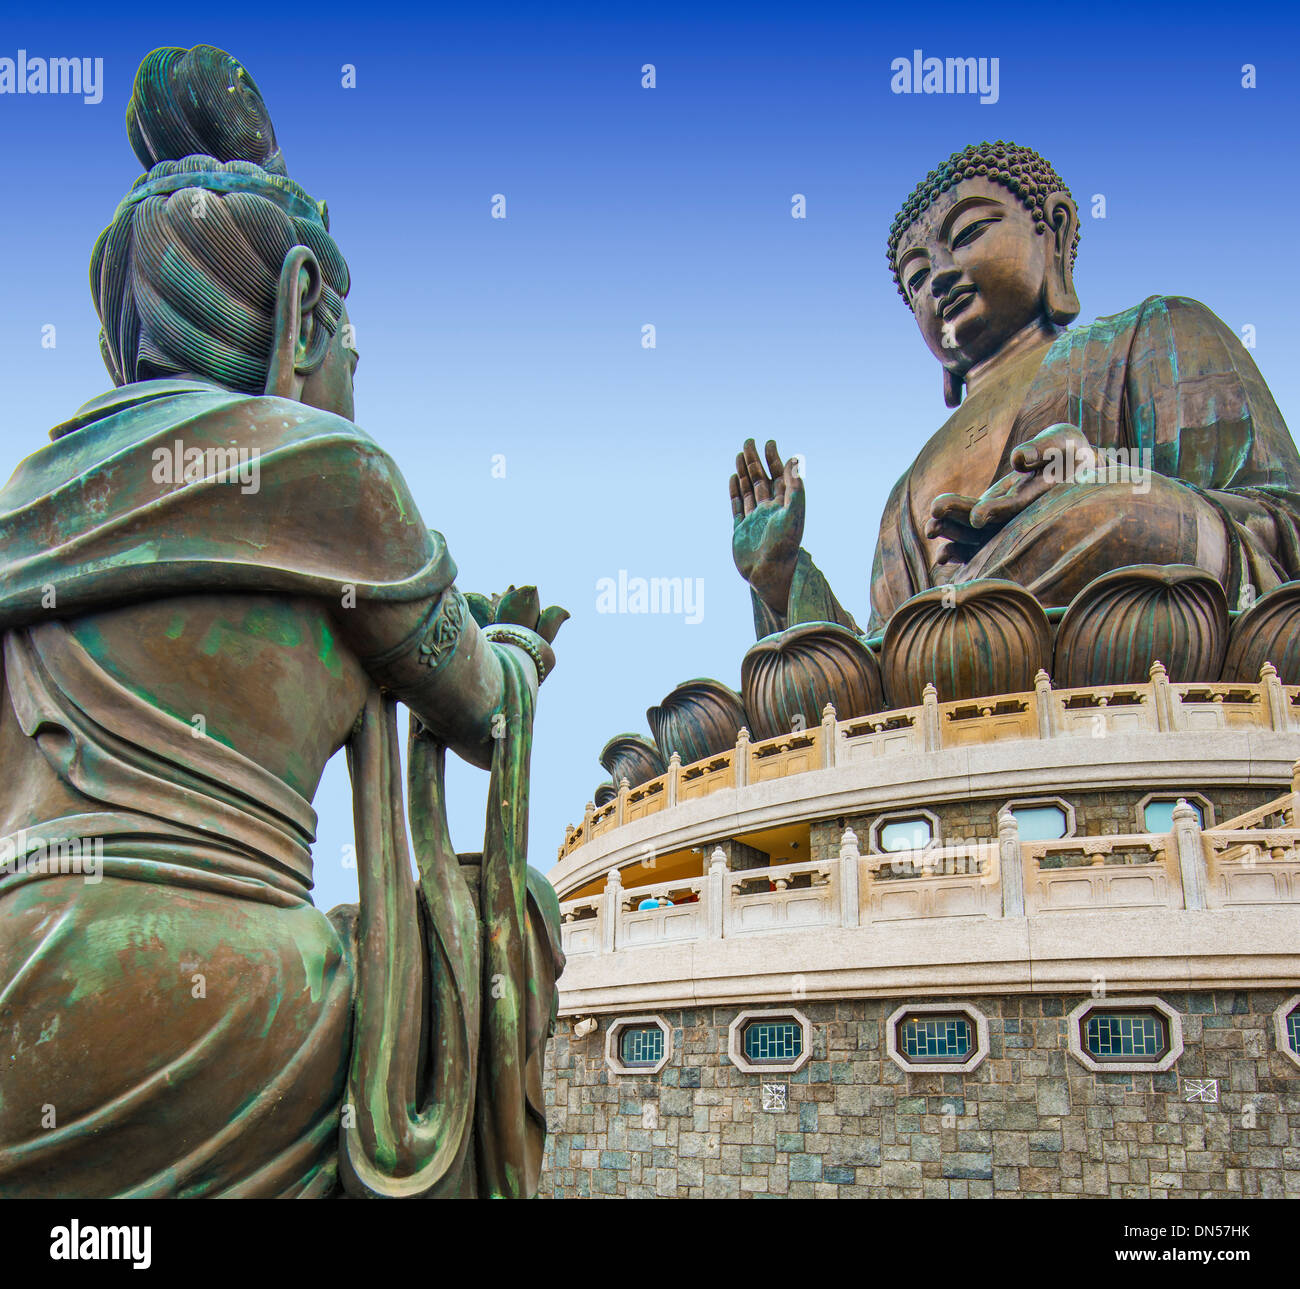 Big Buddha of Lantau Island in Hong Kong, China. - Stock Image